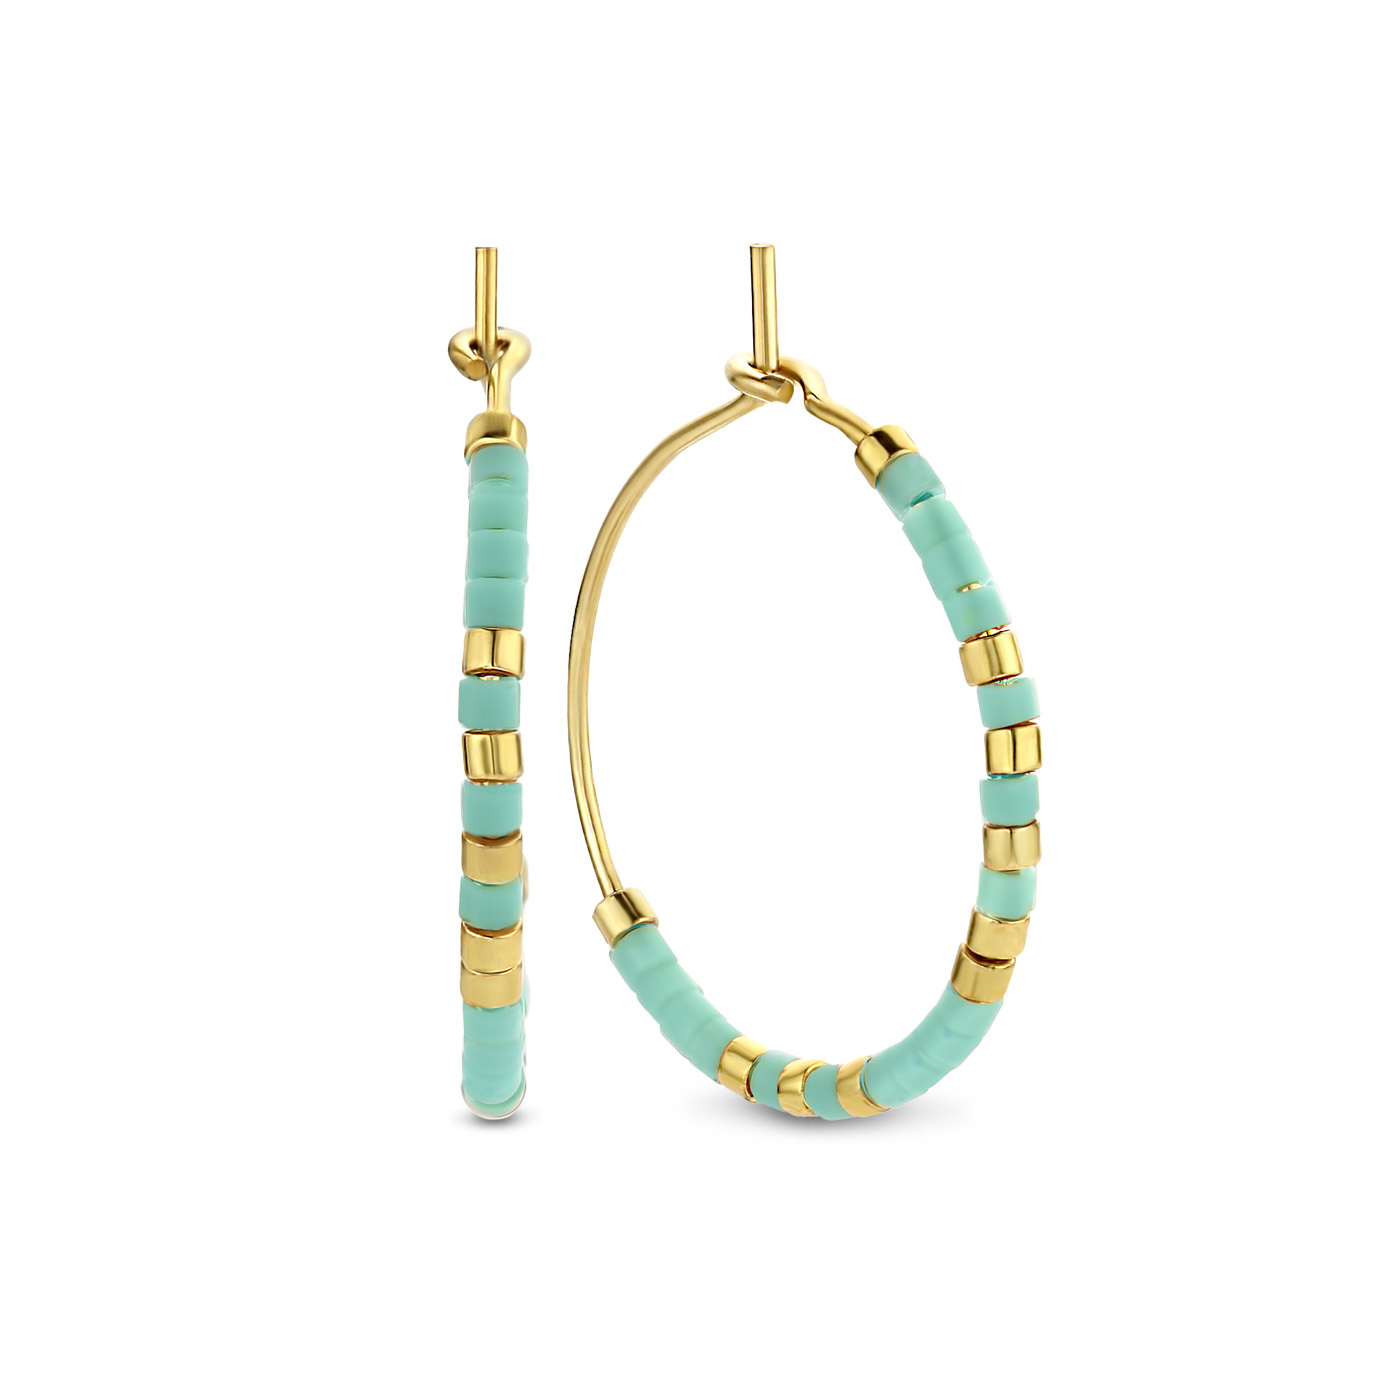 May Sparkle Happiness Jasmine gold colored hoop earrings